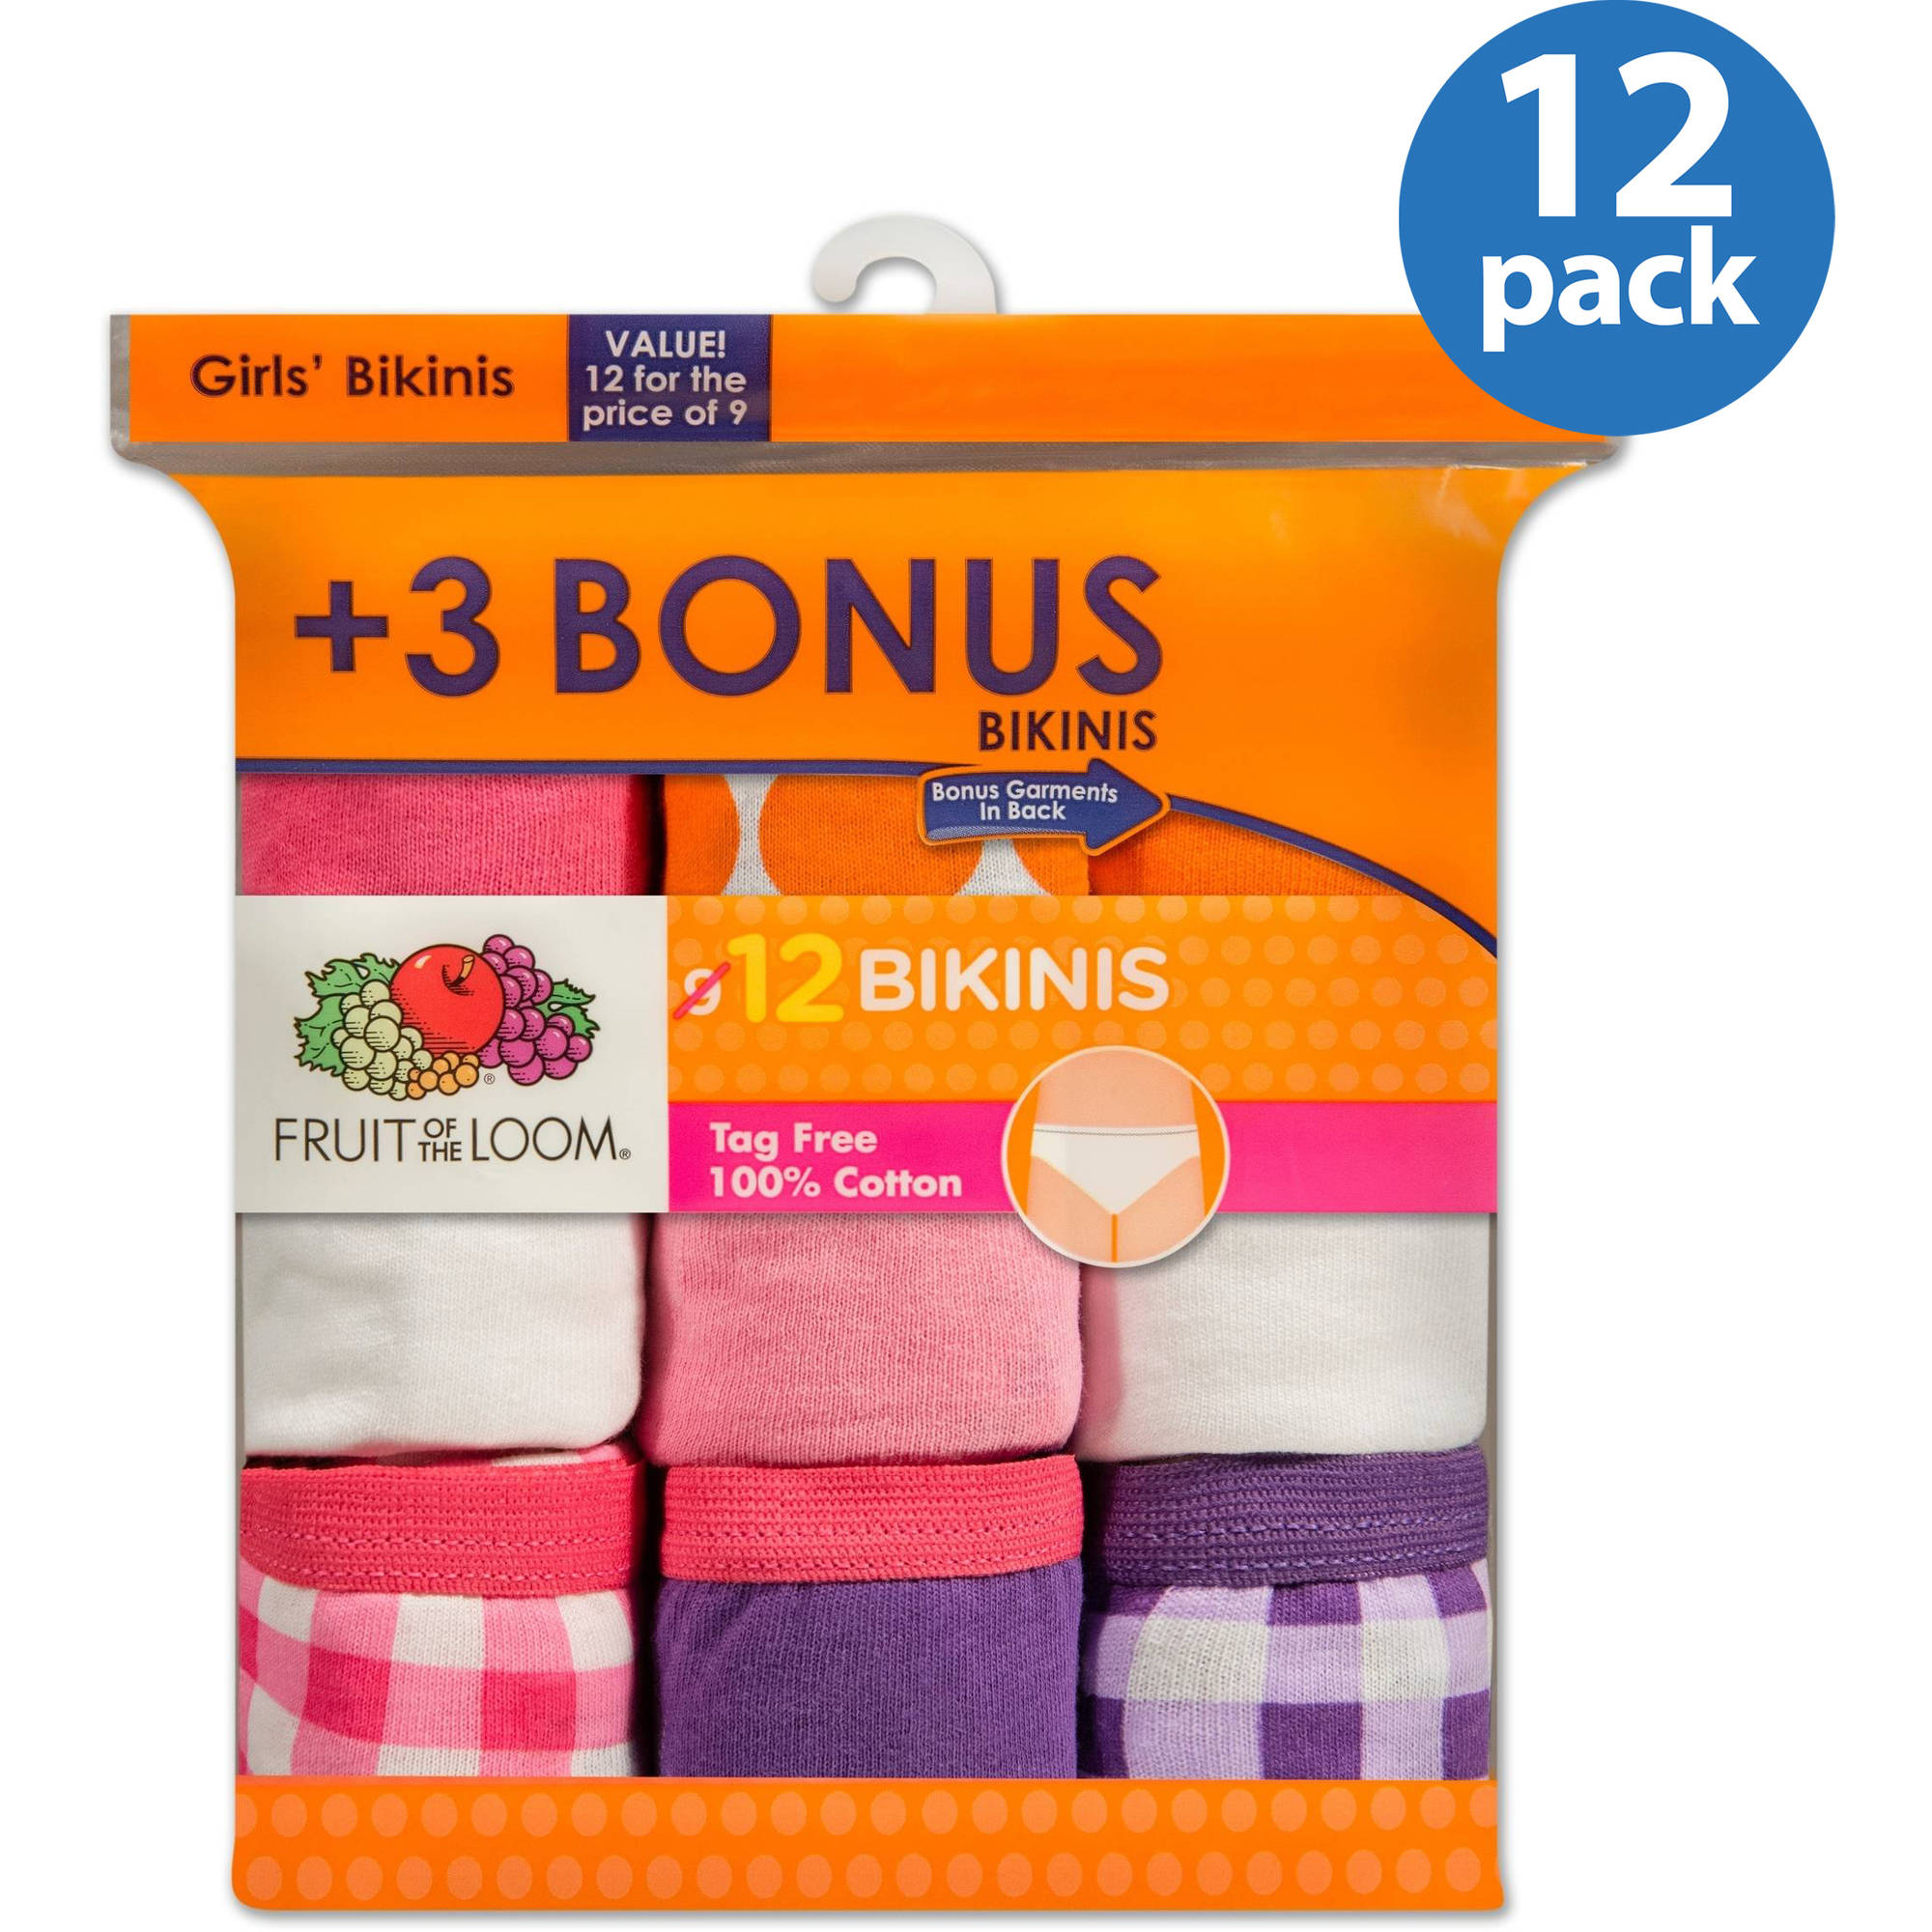 Fruit of the Loom Girls' 100% Cotton Bikini Panty, 9+3 Bonus Pack